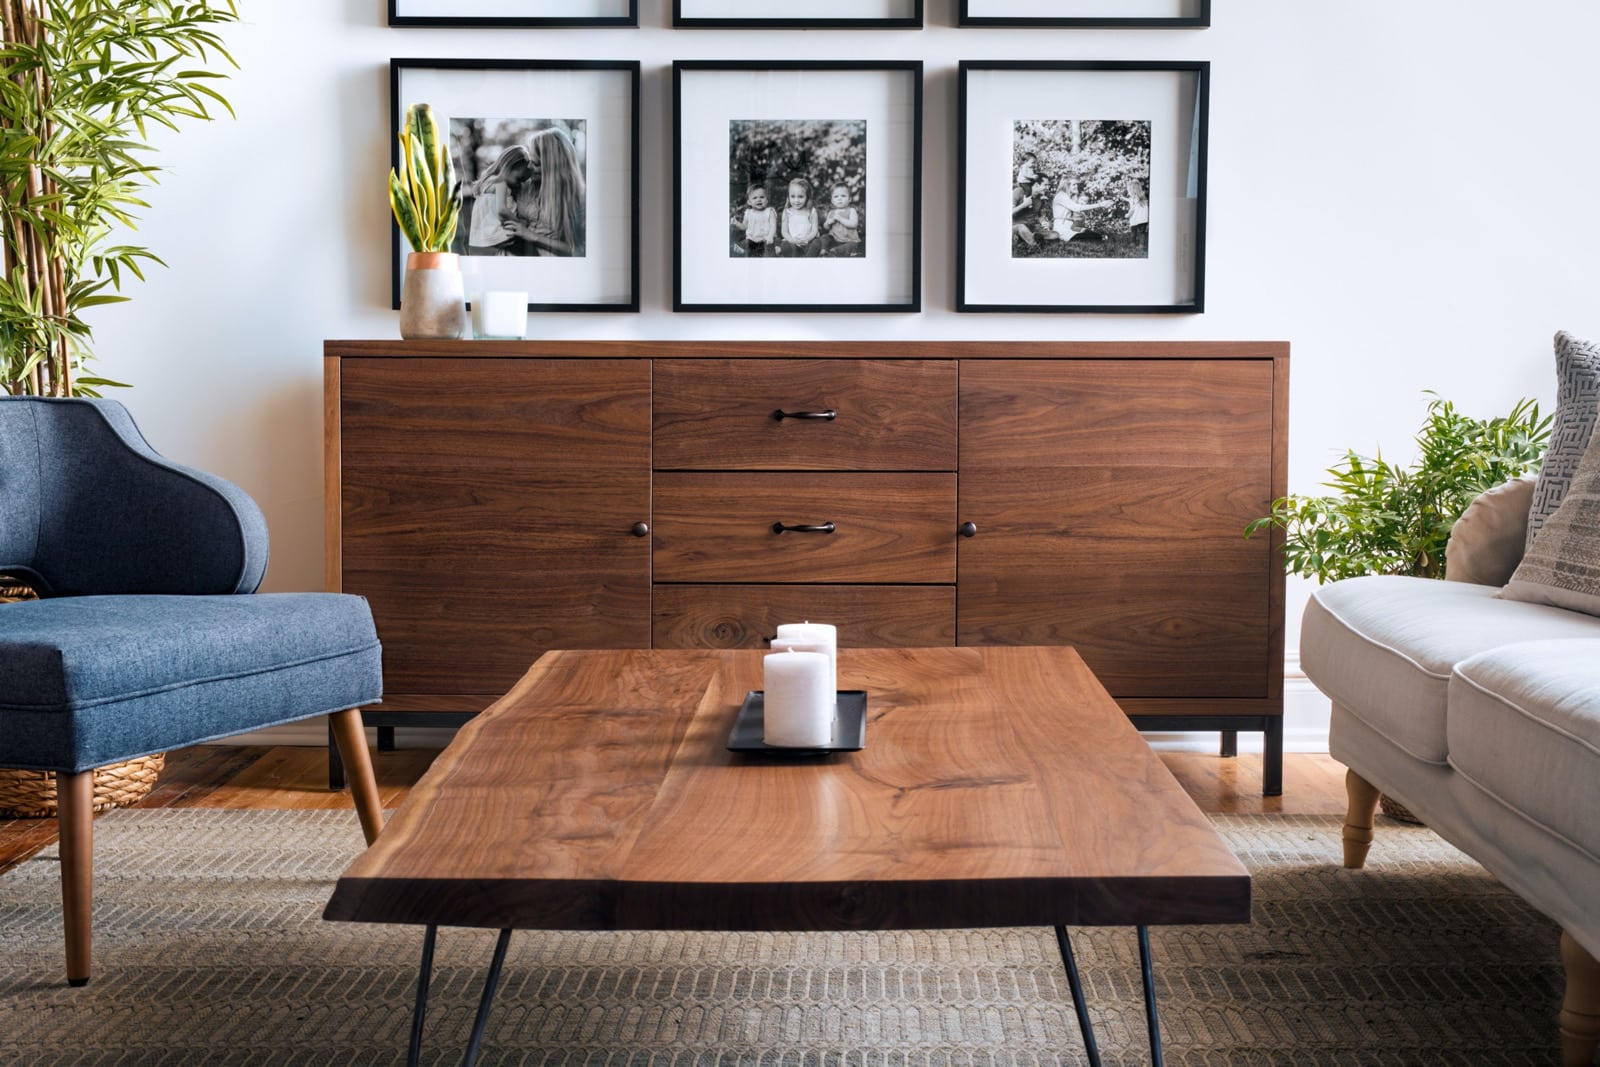 A Credenza Sideboard And Buffet, Dining Room Credenza